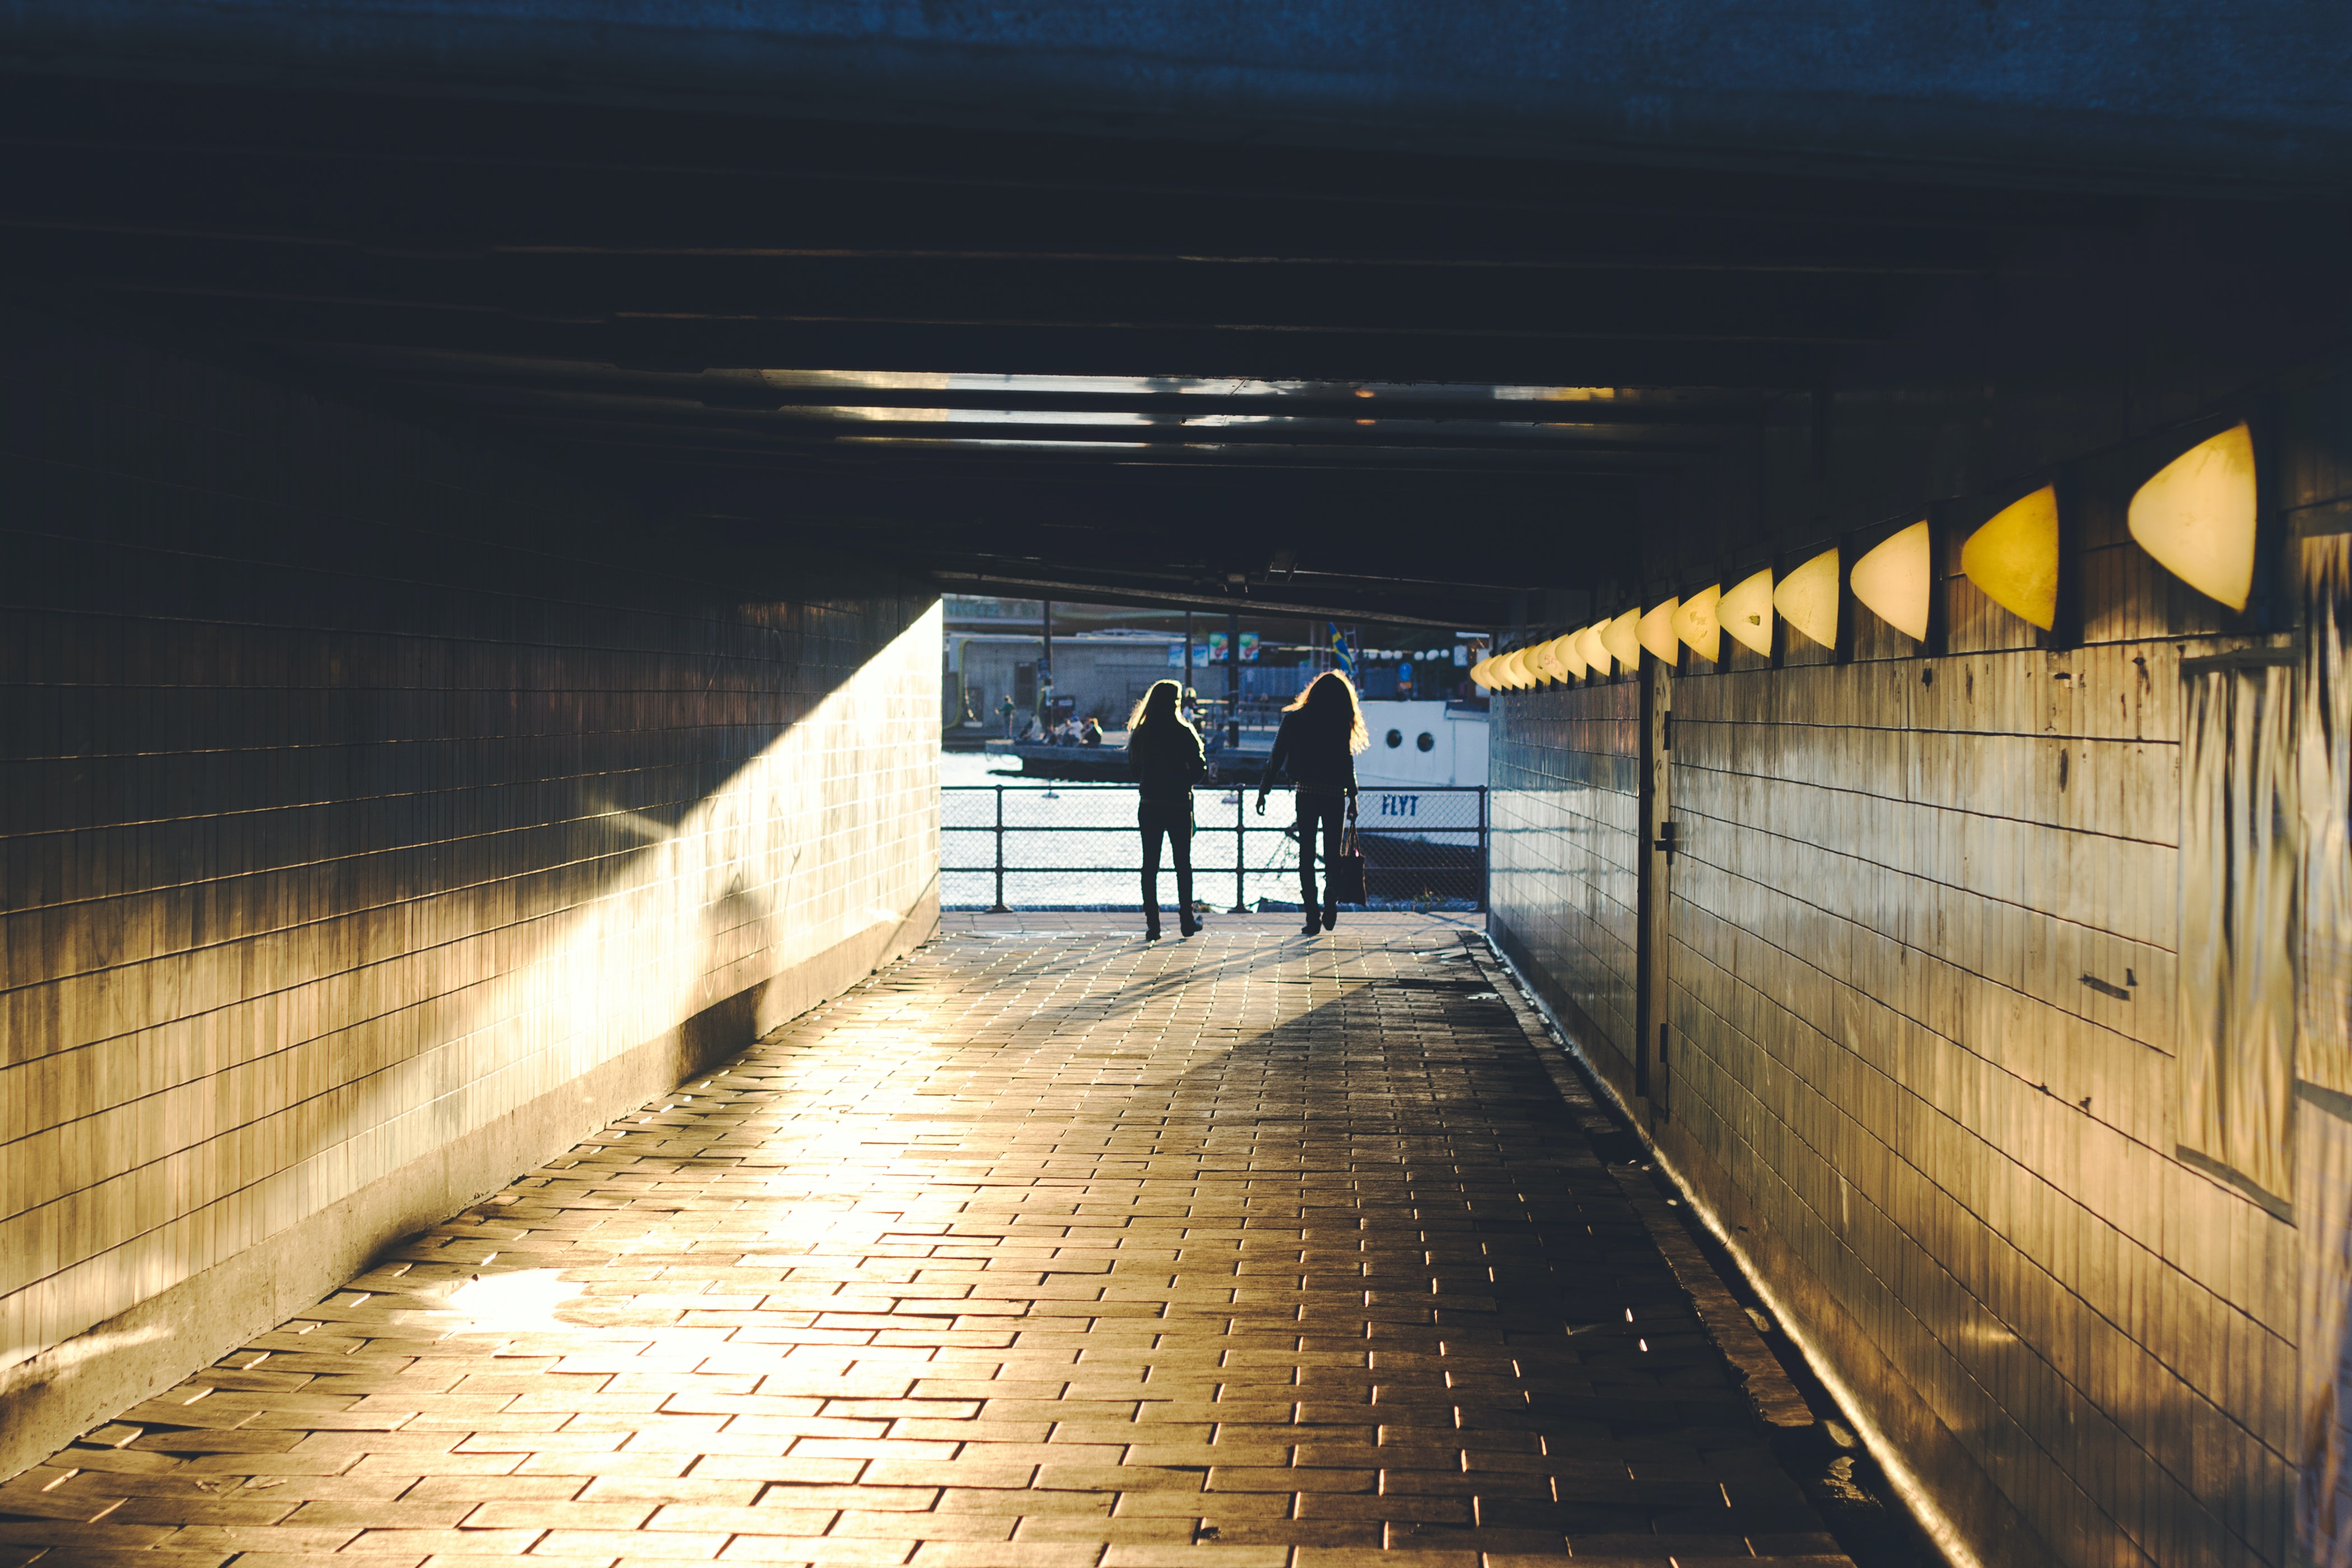 two person walking on hallway